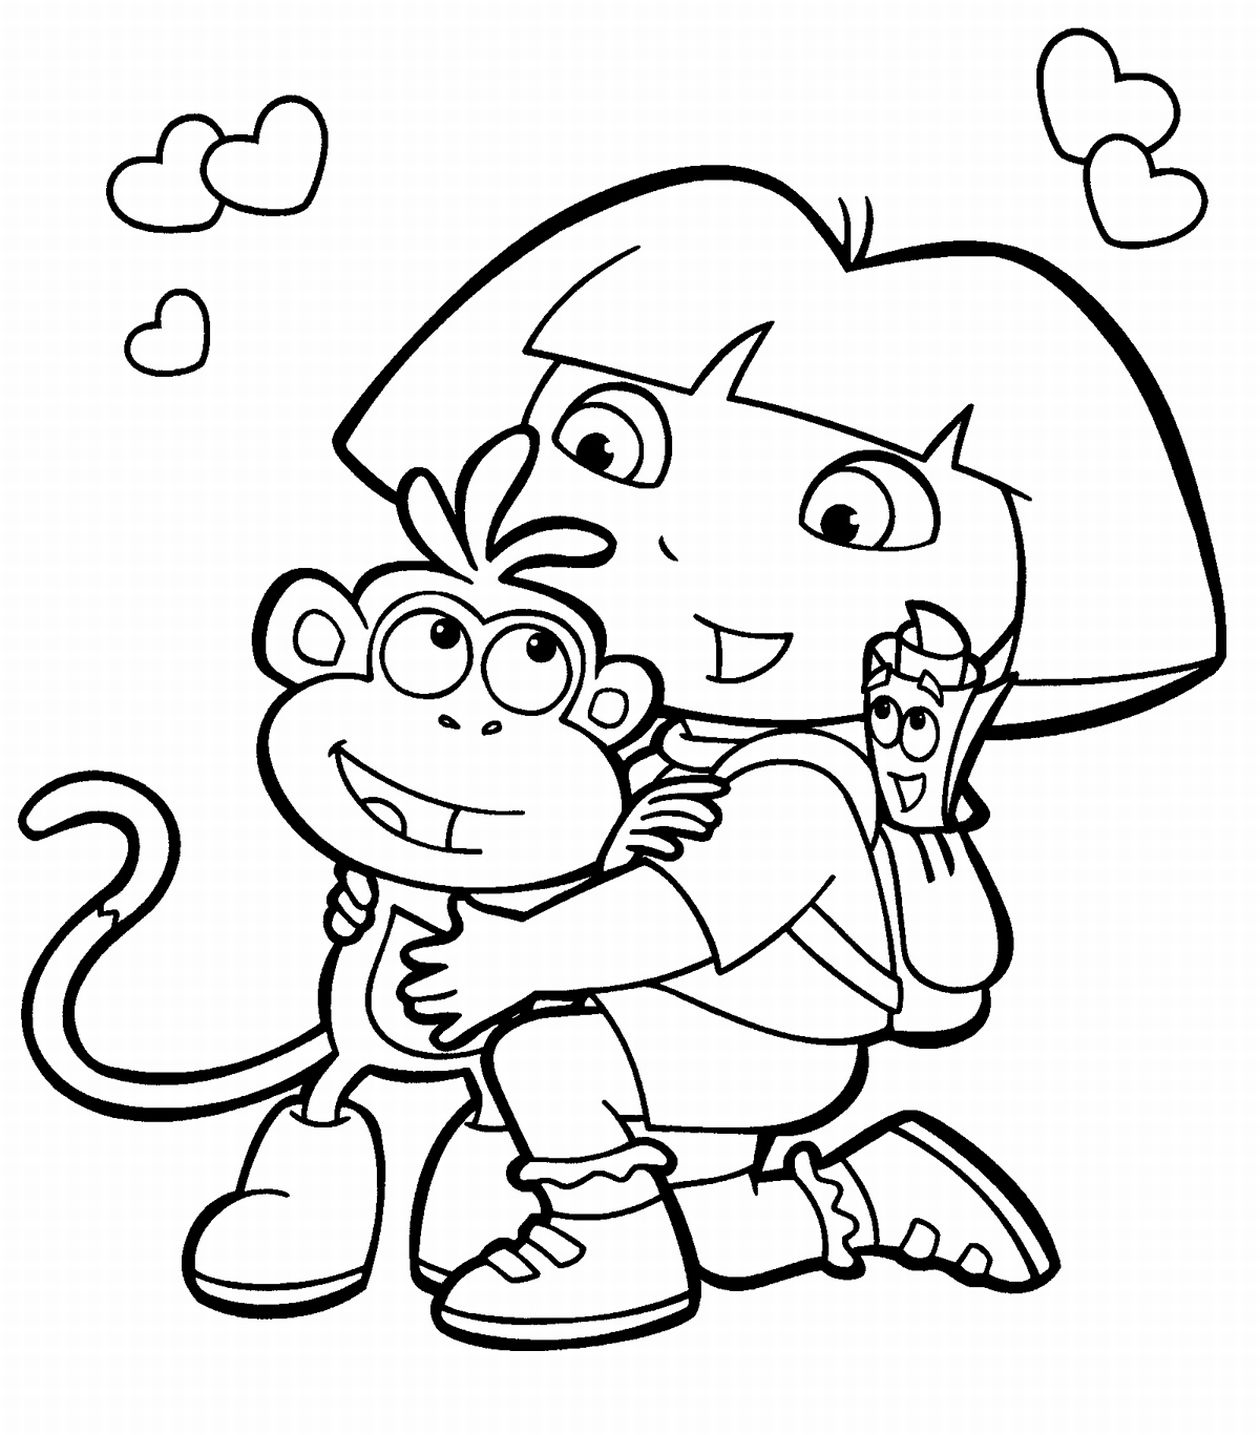 coloring picture of dora print download dora coloring pages to learn new things dora of coloring picture